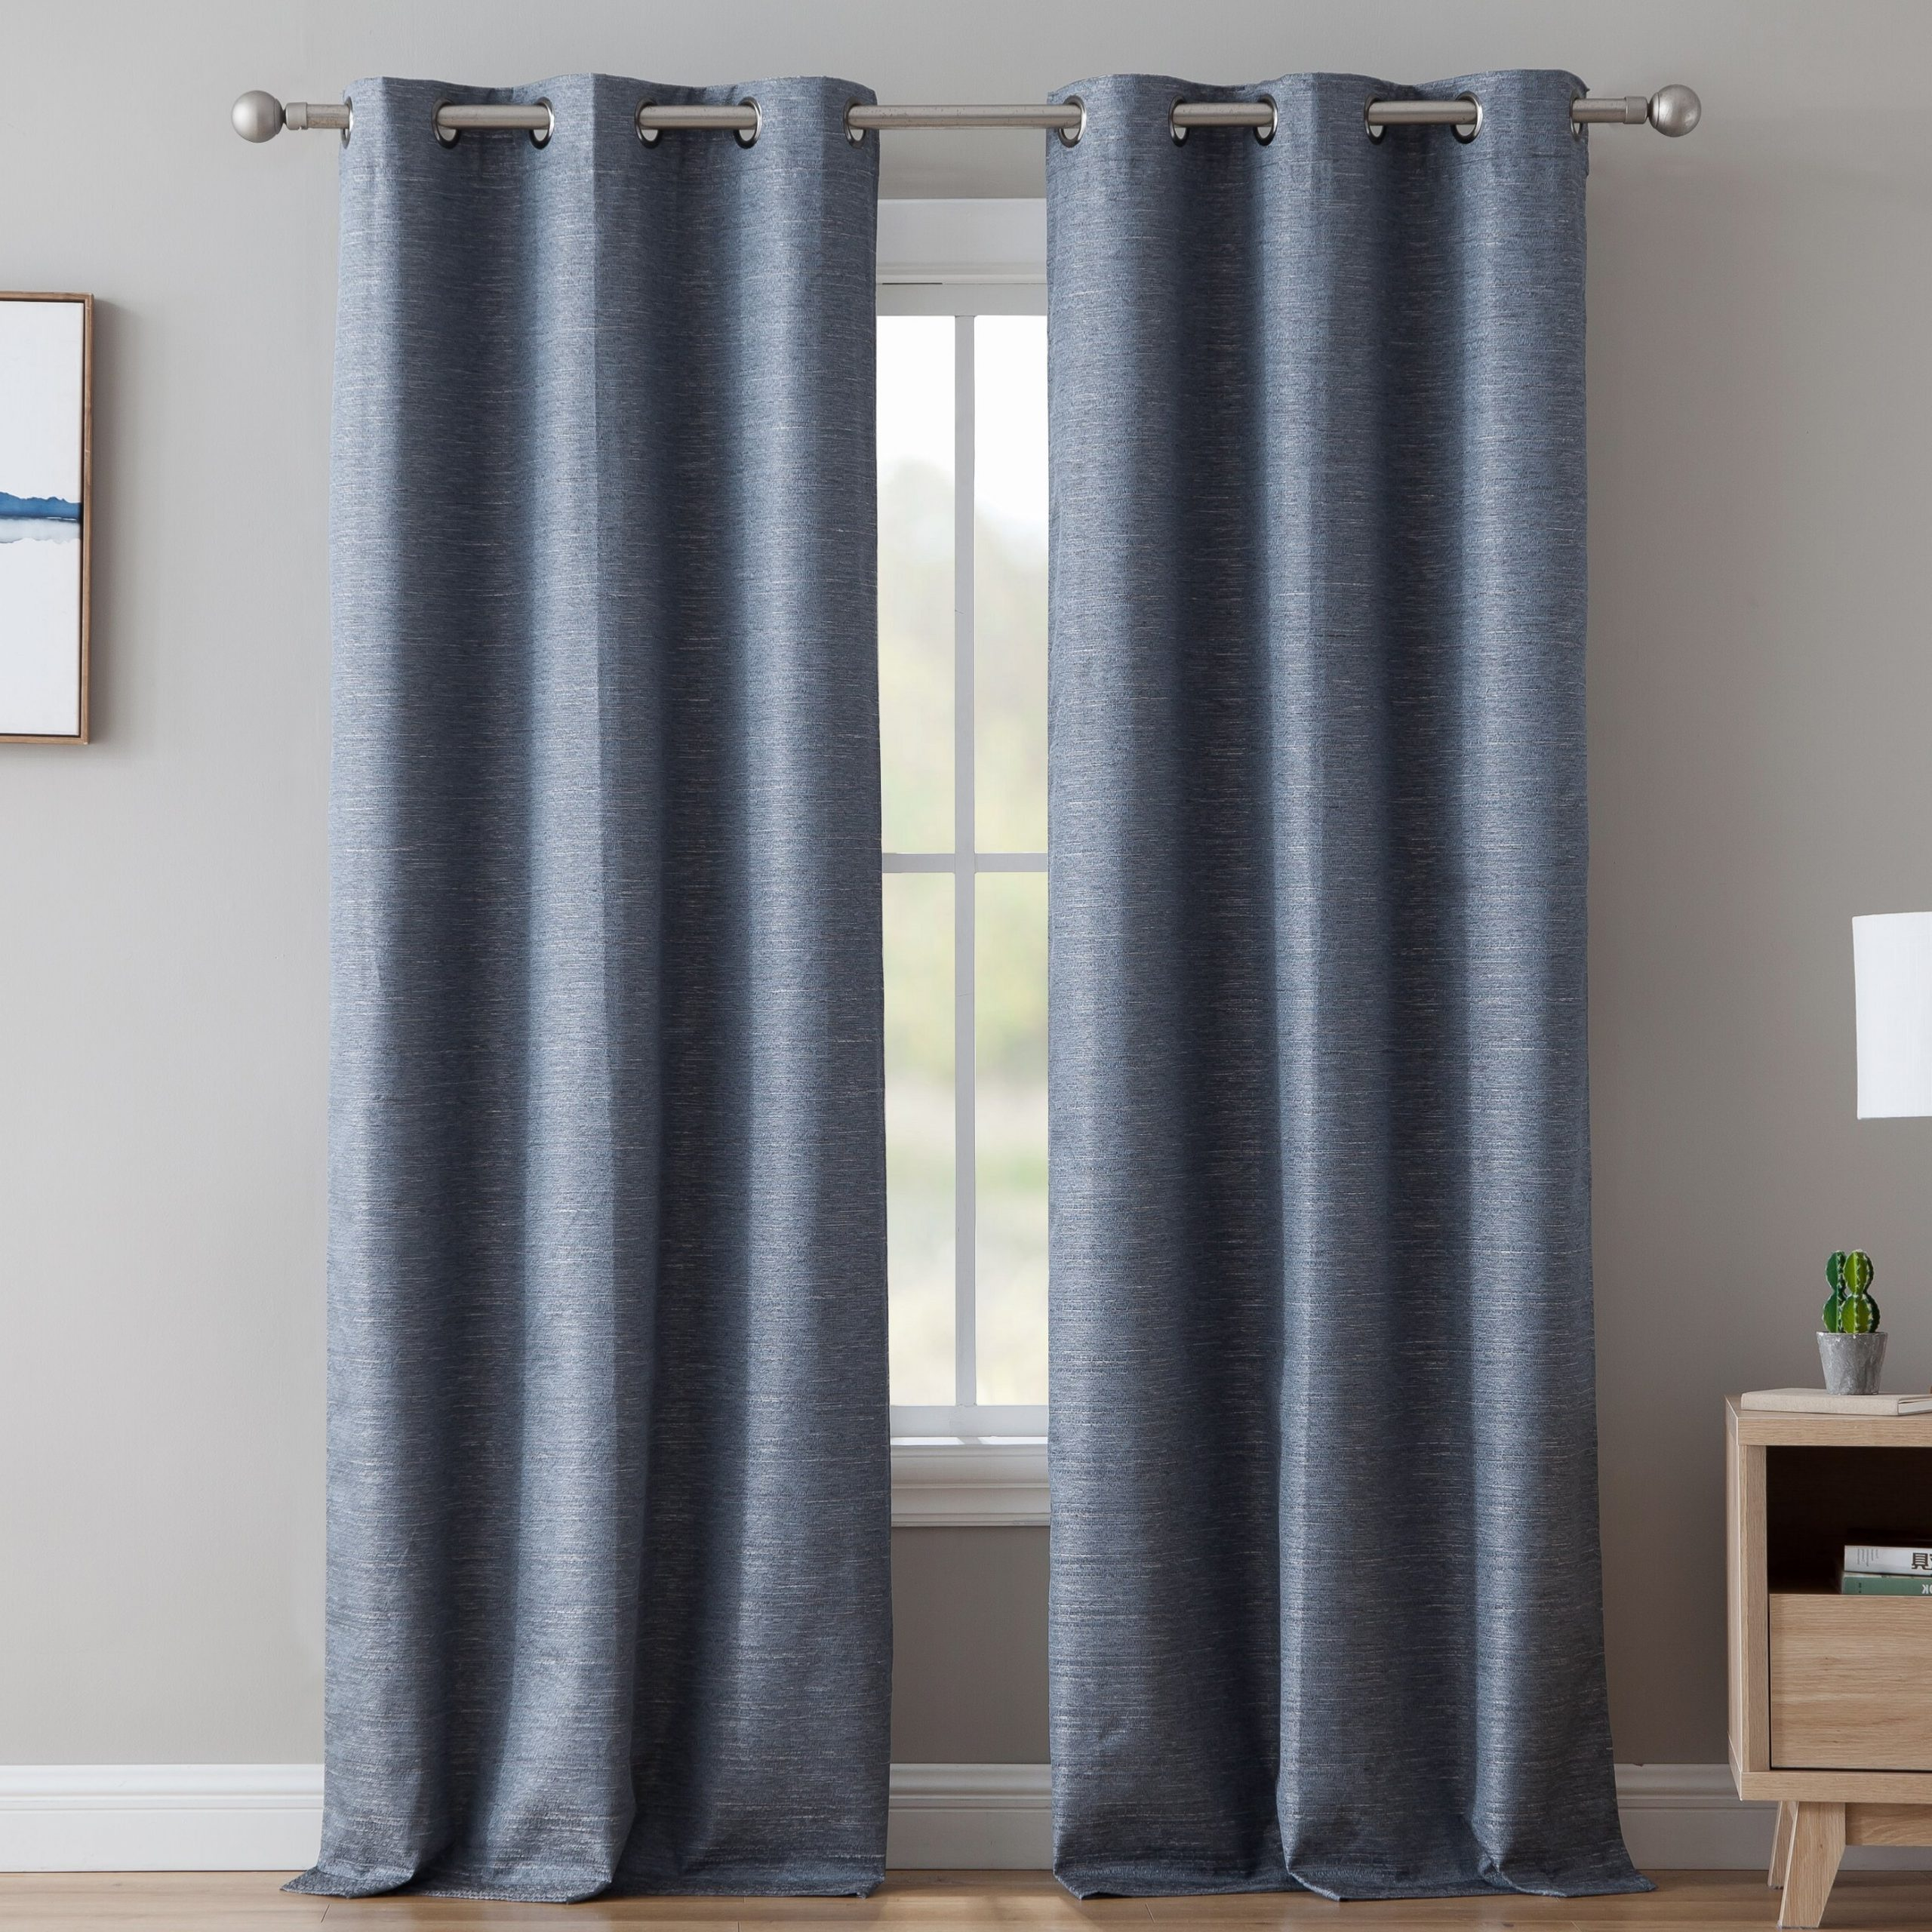 Well Known Embossed Thermal Weaved Blackout Grommet Drapery Curtains Pertaining To Middlewich Textured Solid Max Blackout Thermal Grommet Curtain Panels (View 20 of 20)